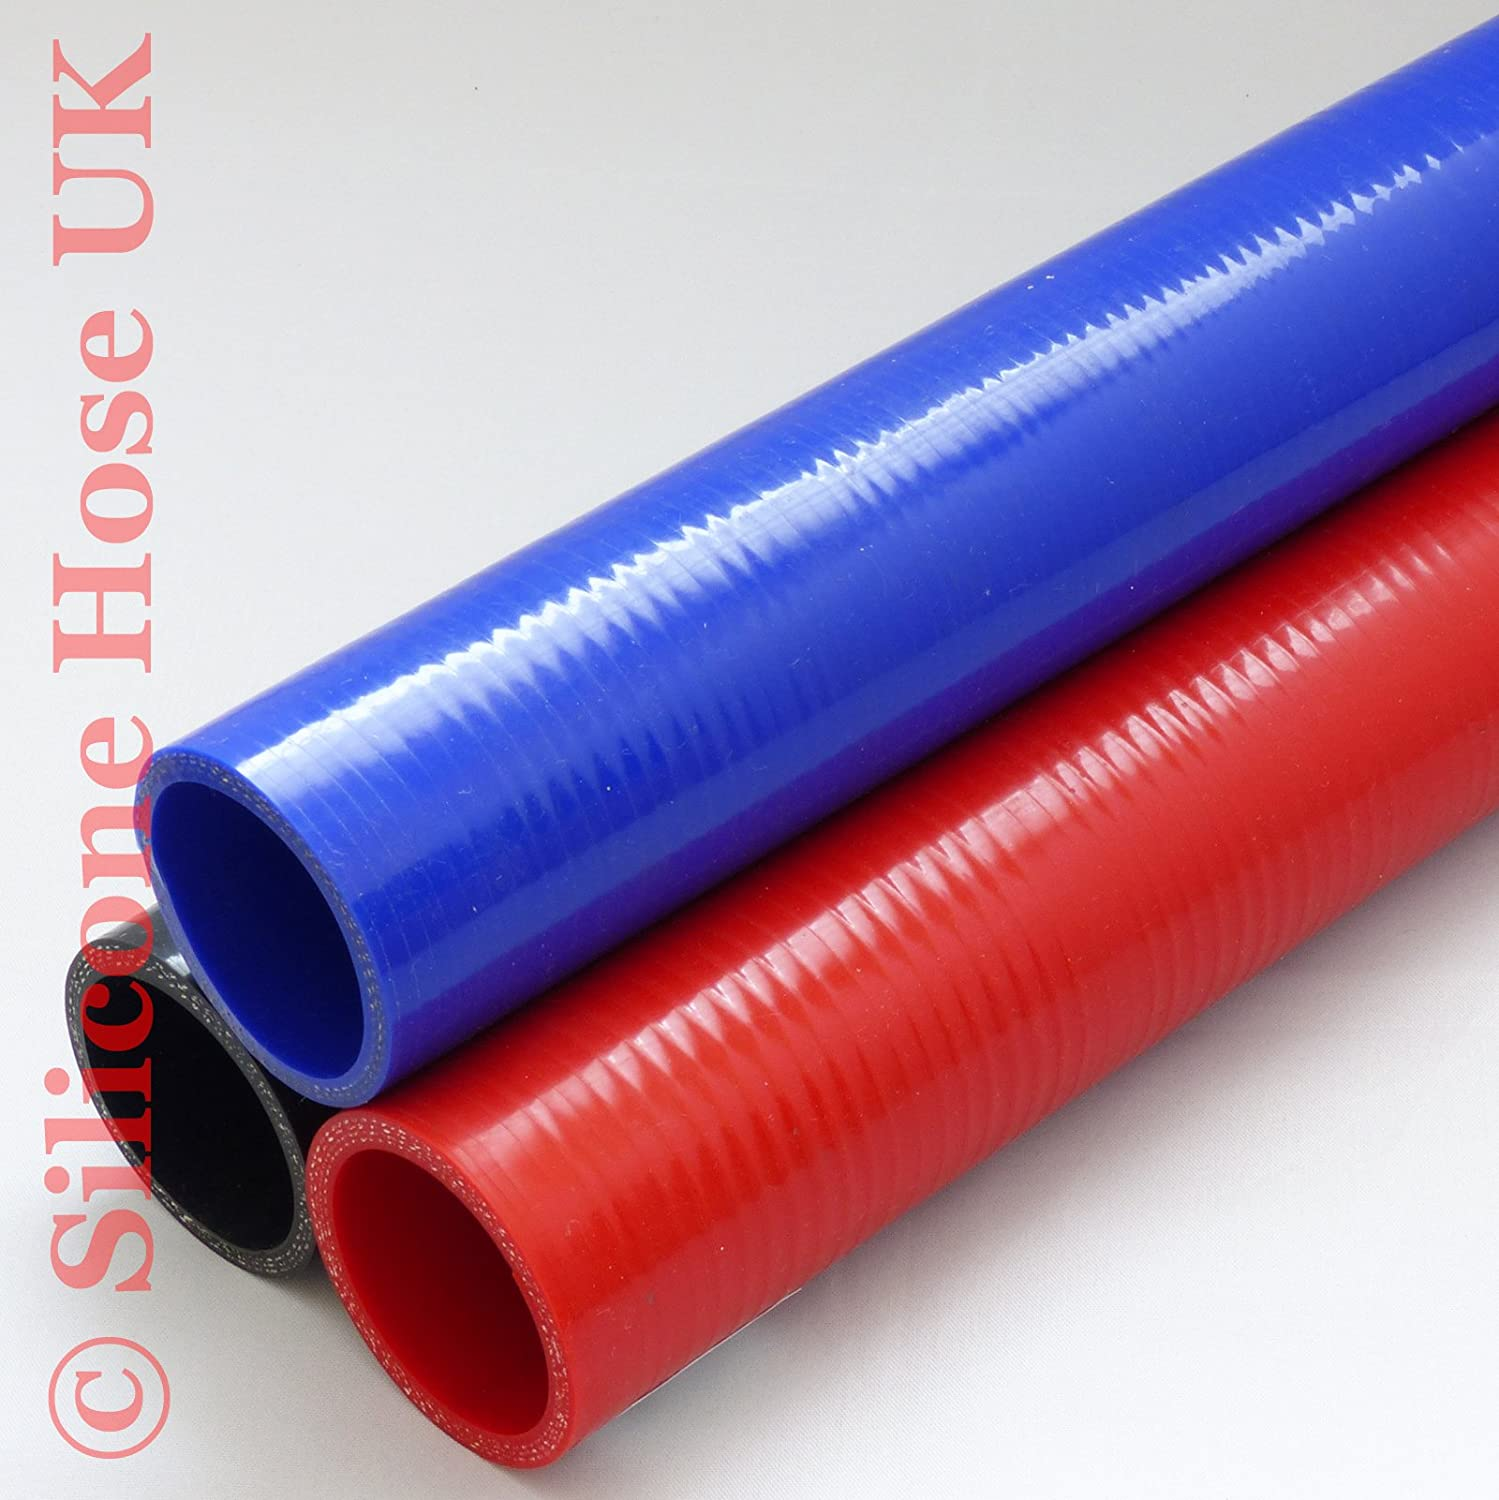 57mm Black Straight Reinforced Silicone Heater Coolant or Turbo Inlet Hose 500mm piece ID